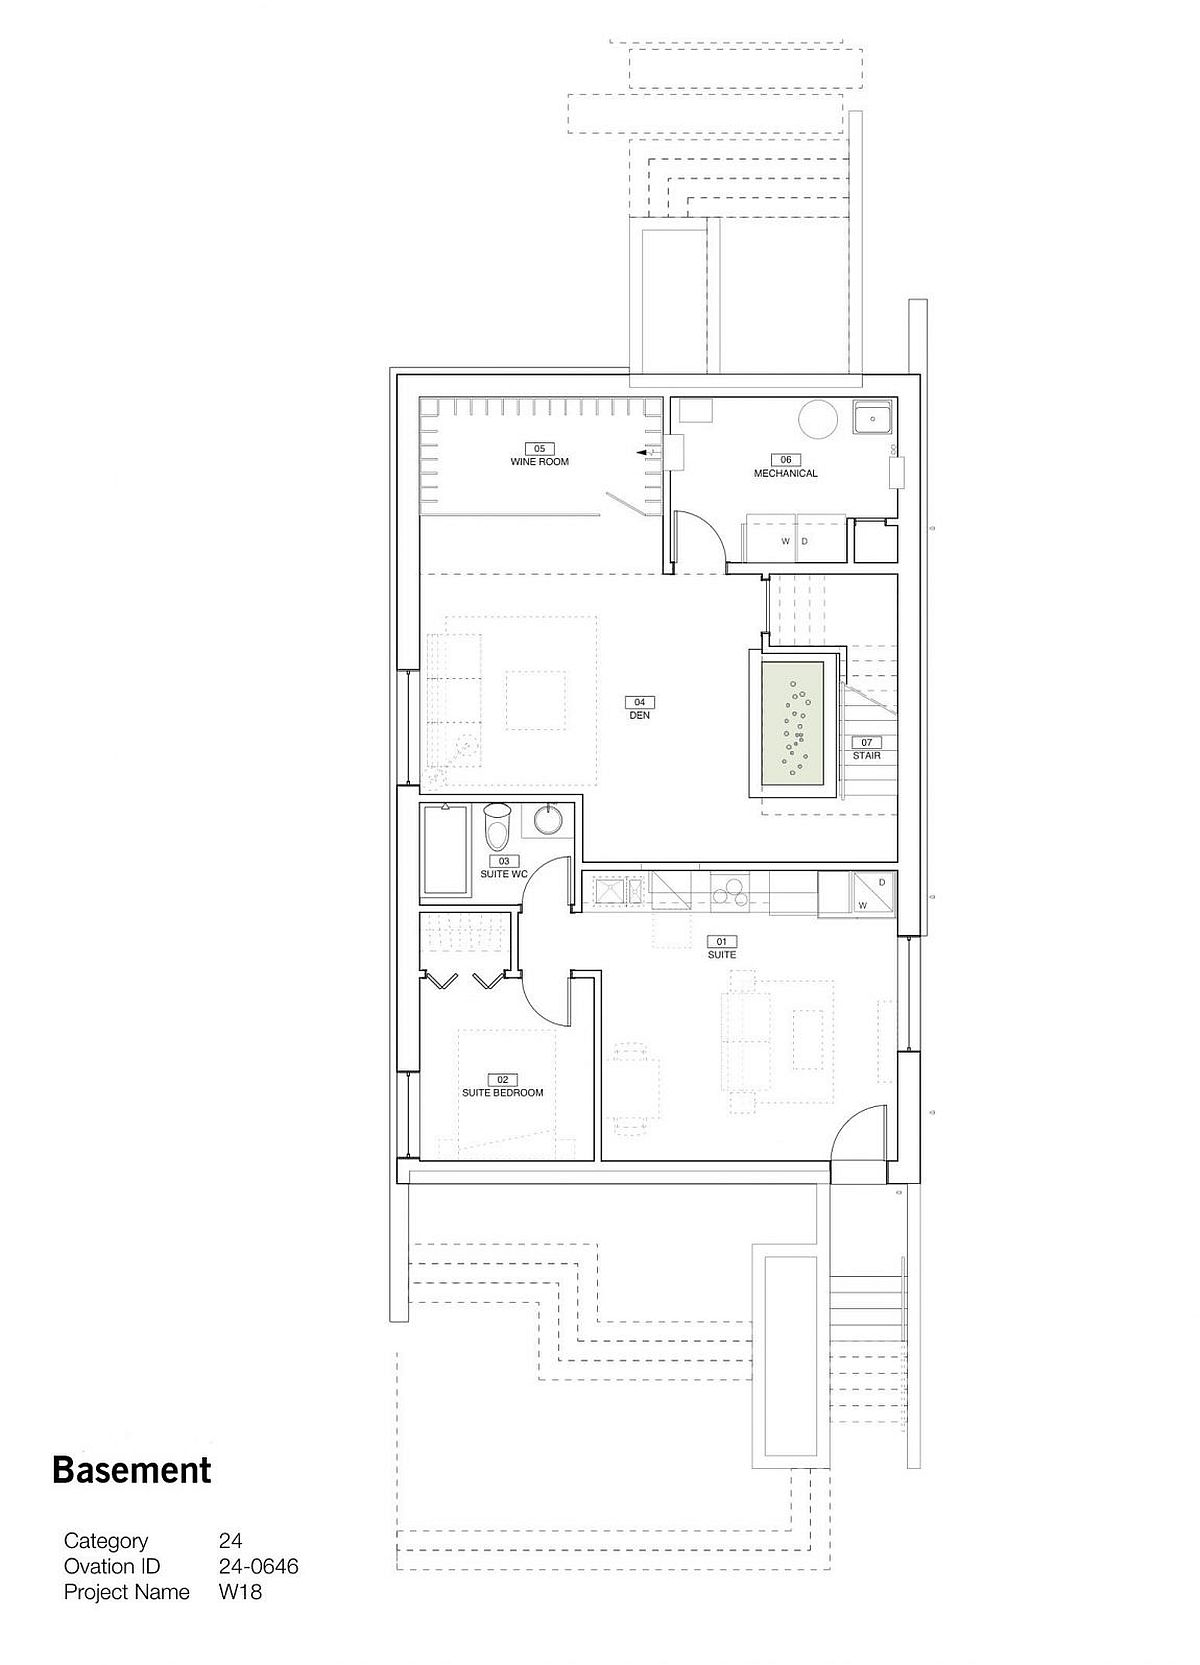 Floor plan of basement level of home in Vancouver